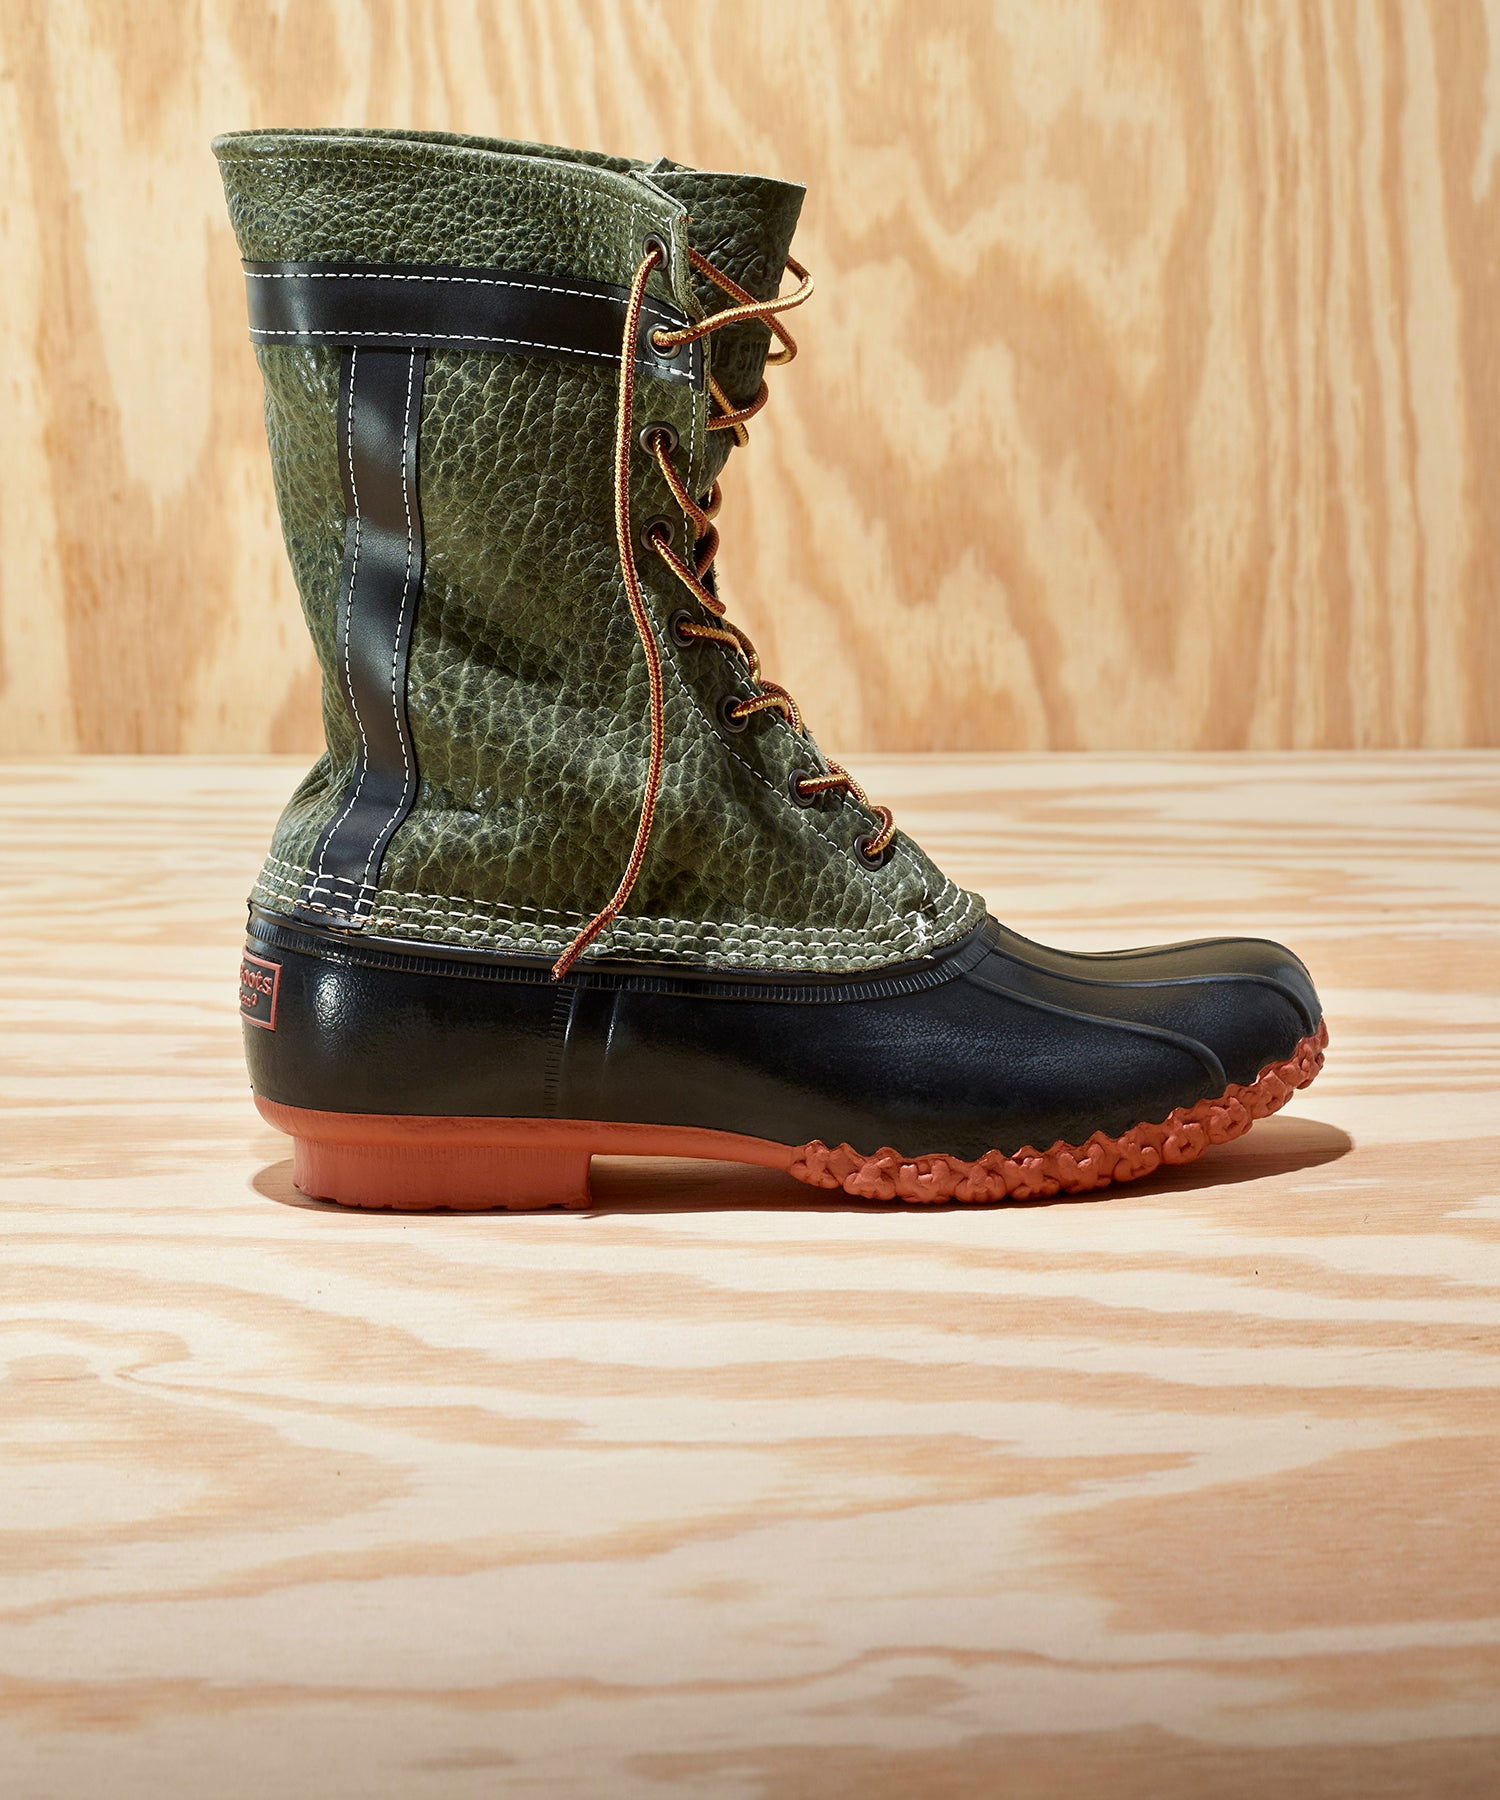 L.L.Bean x Todd Snyder Bean Boot in Olive Bison Leather